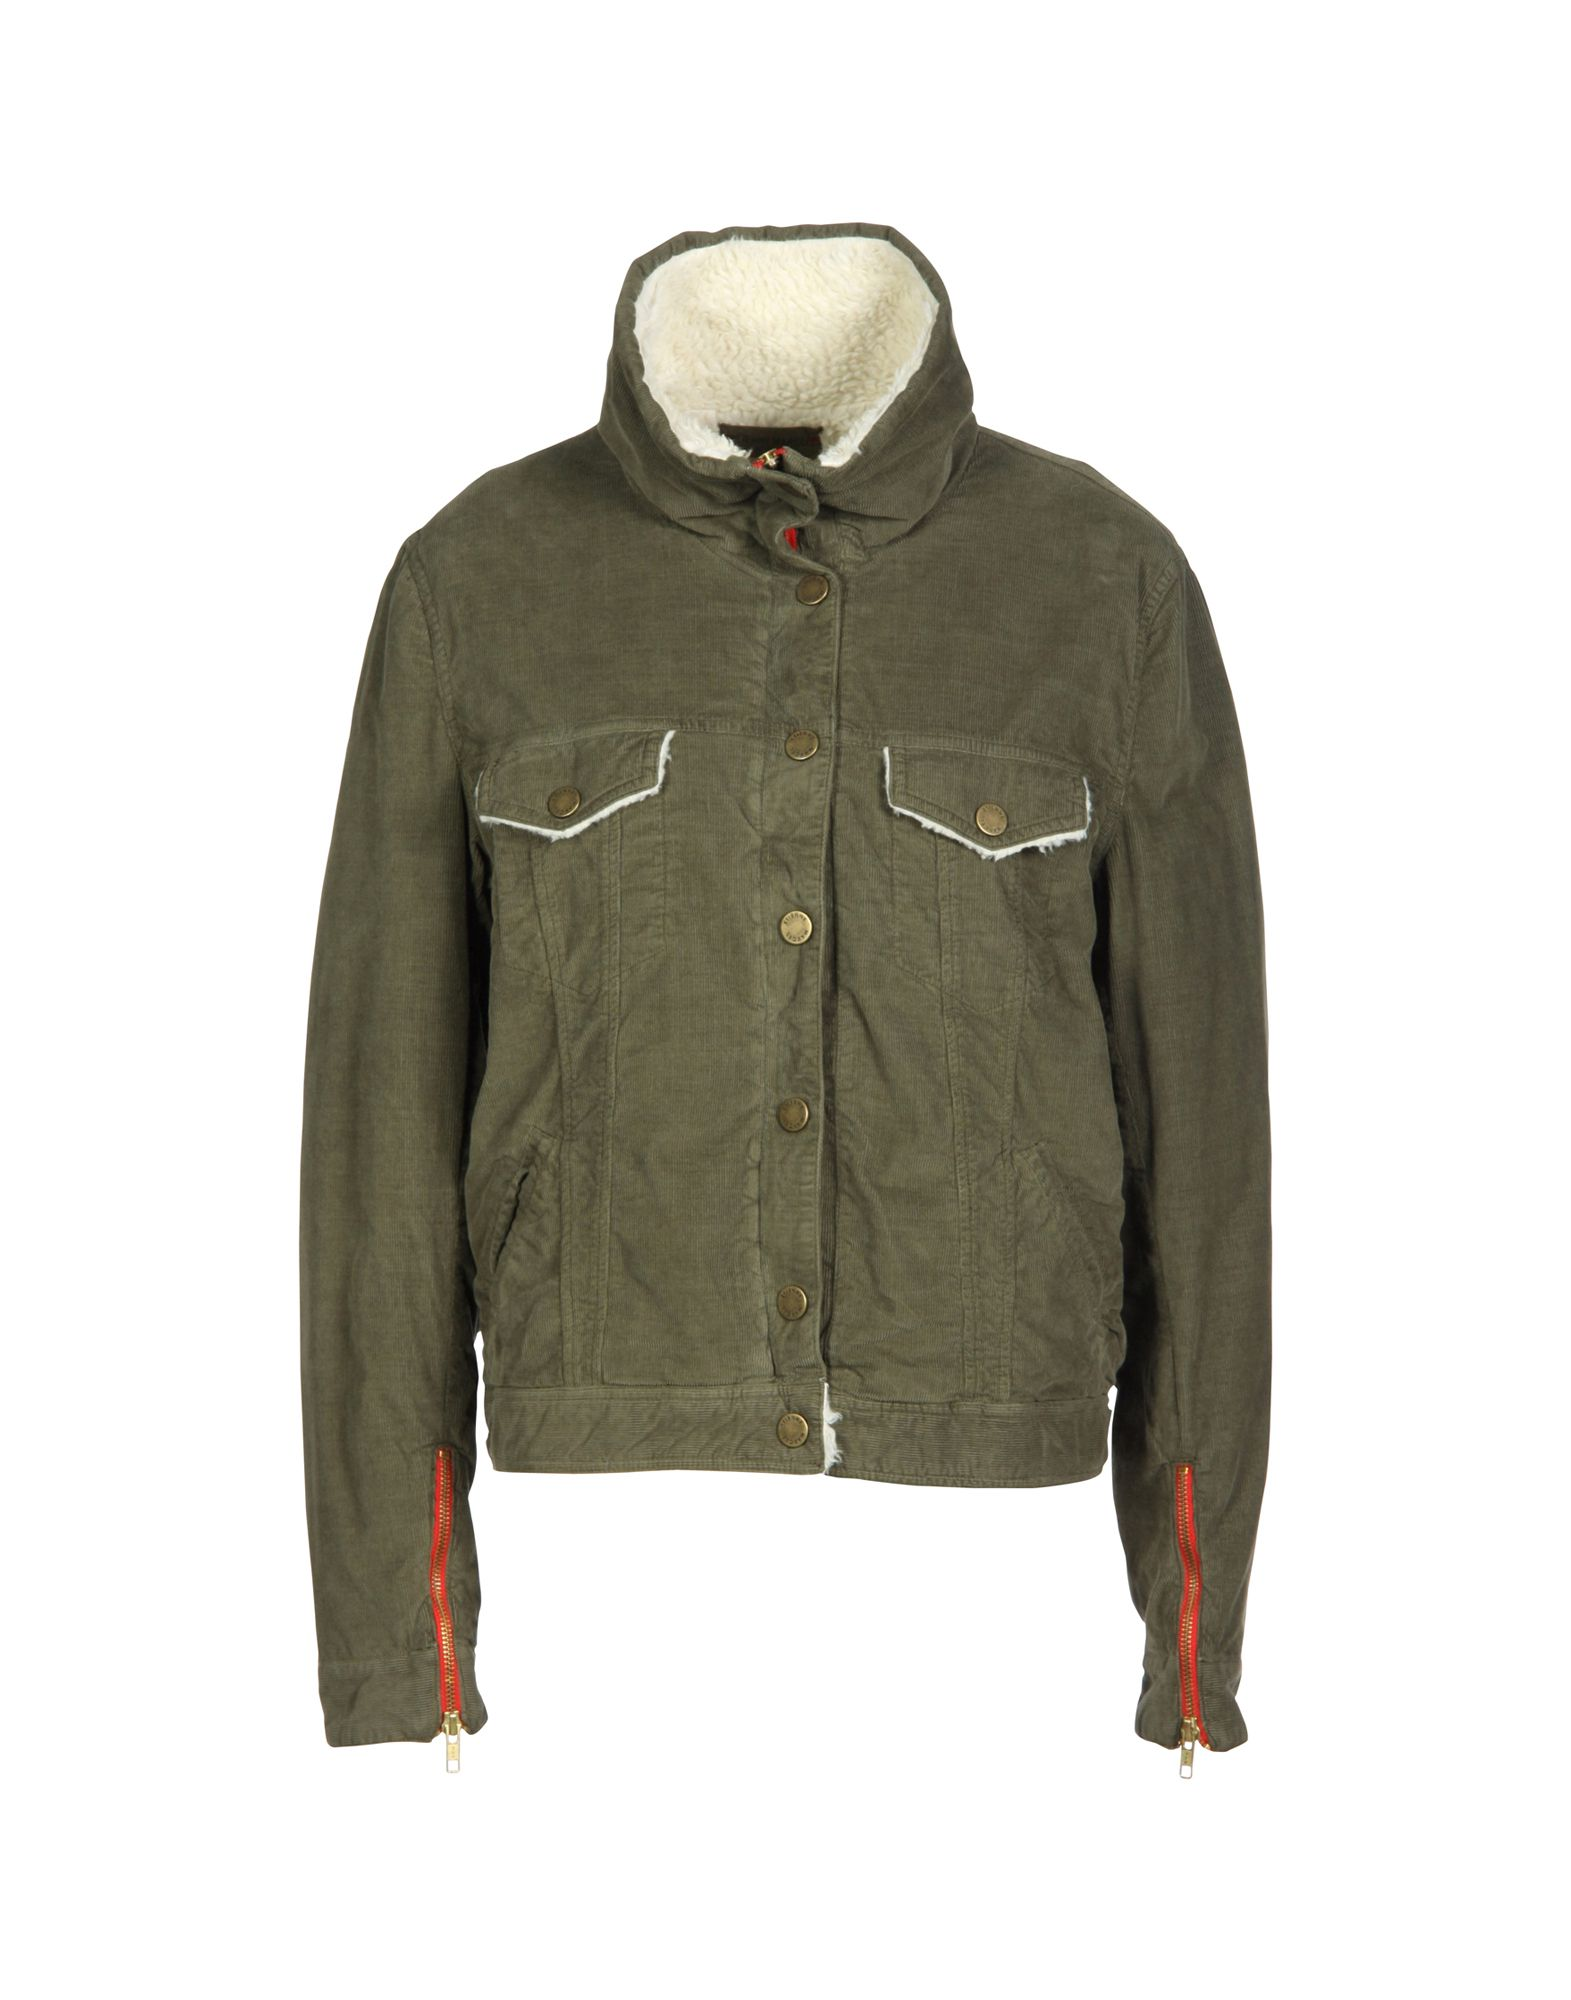 ETIENNE MARCEL Jackets in Military Green